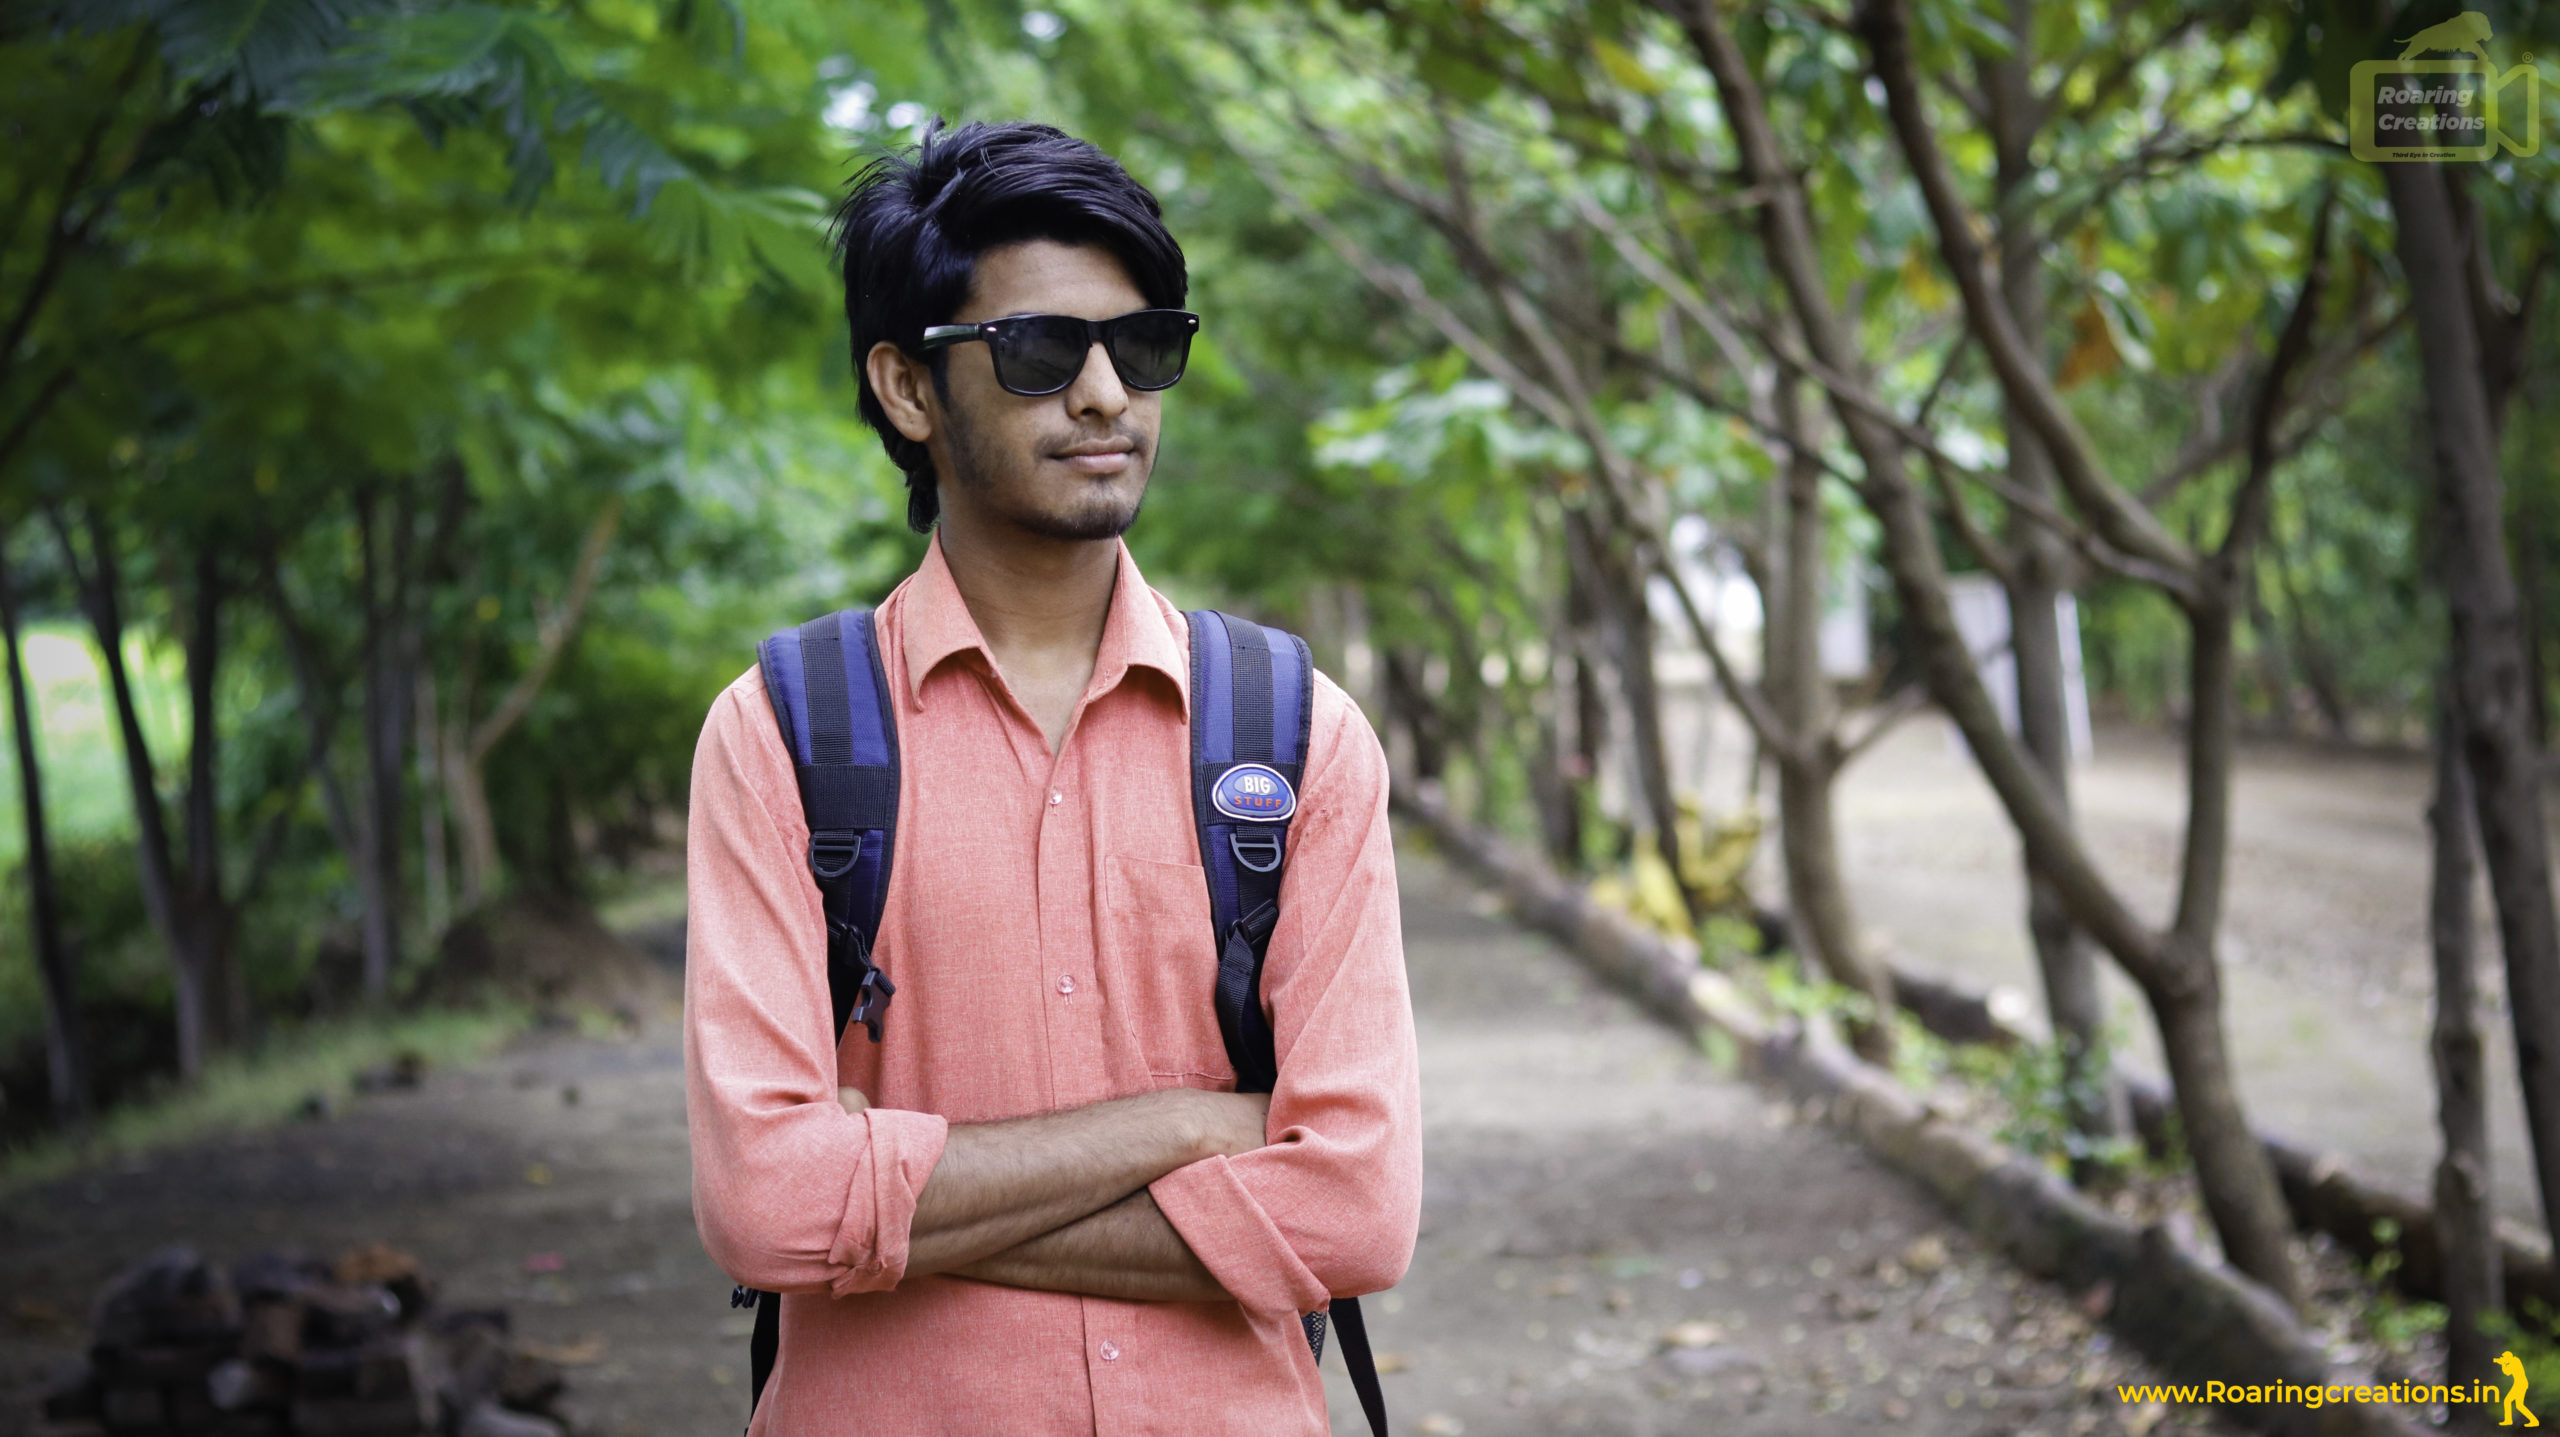 Outdoor Photo Shoot Poses For Boys College Students Photography Roaring Creations Clicks